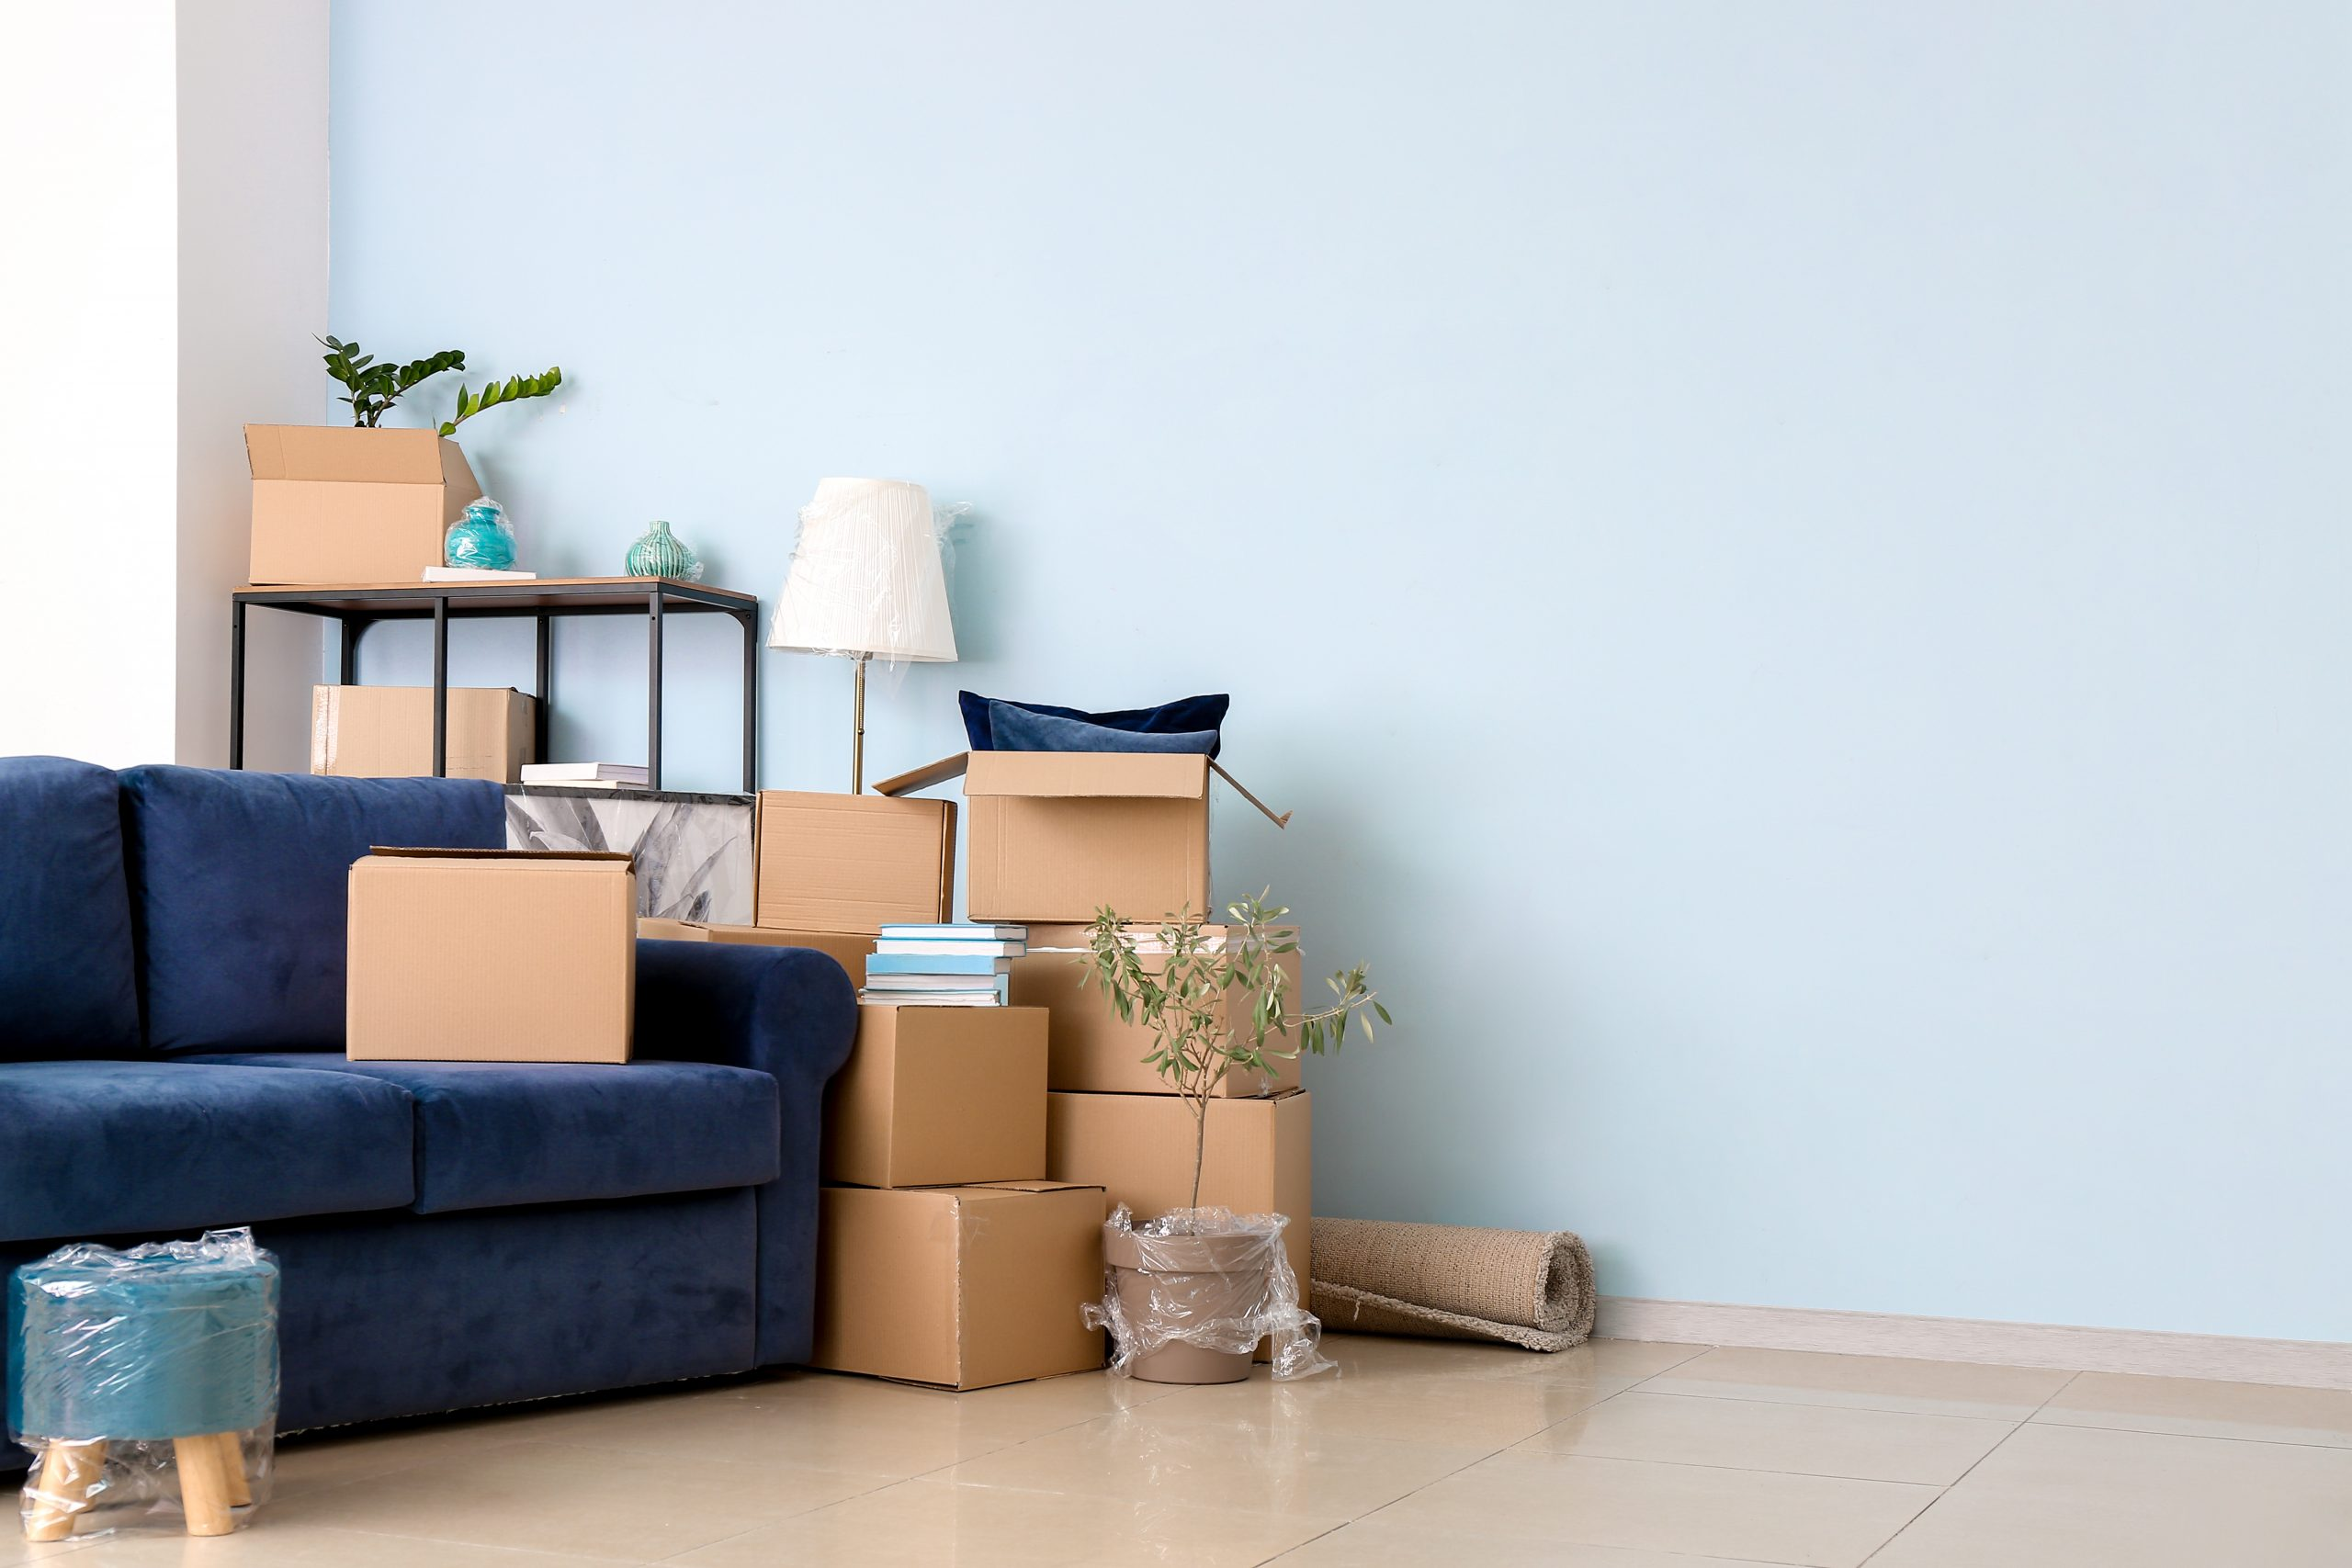 Cardboard boxes with belongings and sofa in new flat on moving day